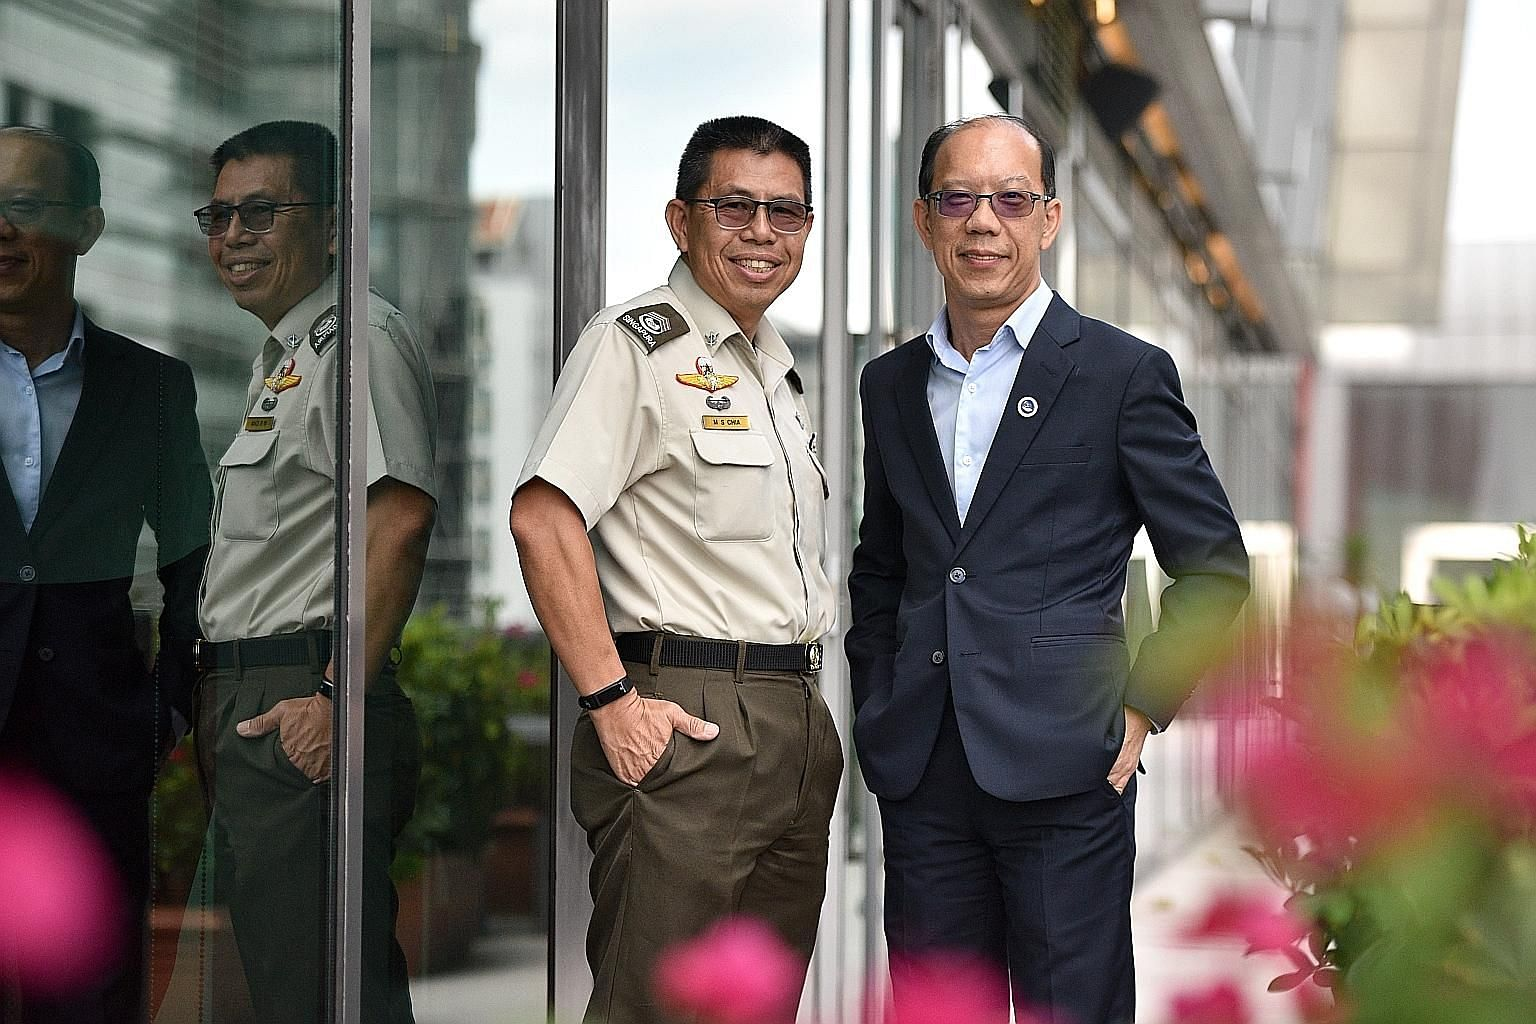 Master Warrant Officer Chia Mui Sowe (left), 54, and Colonel (Retired) Lai Hing Nam, 53, are recipients of the bond-free Singapore Management University Warriors Scholarship.